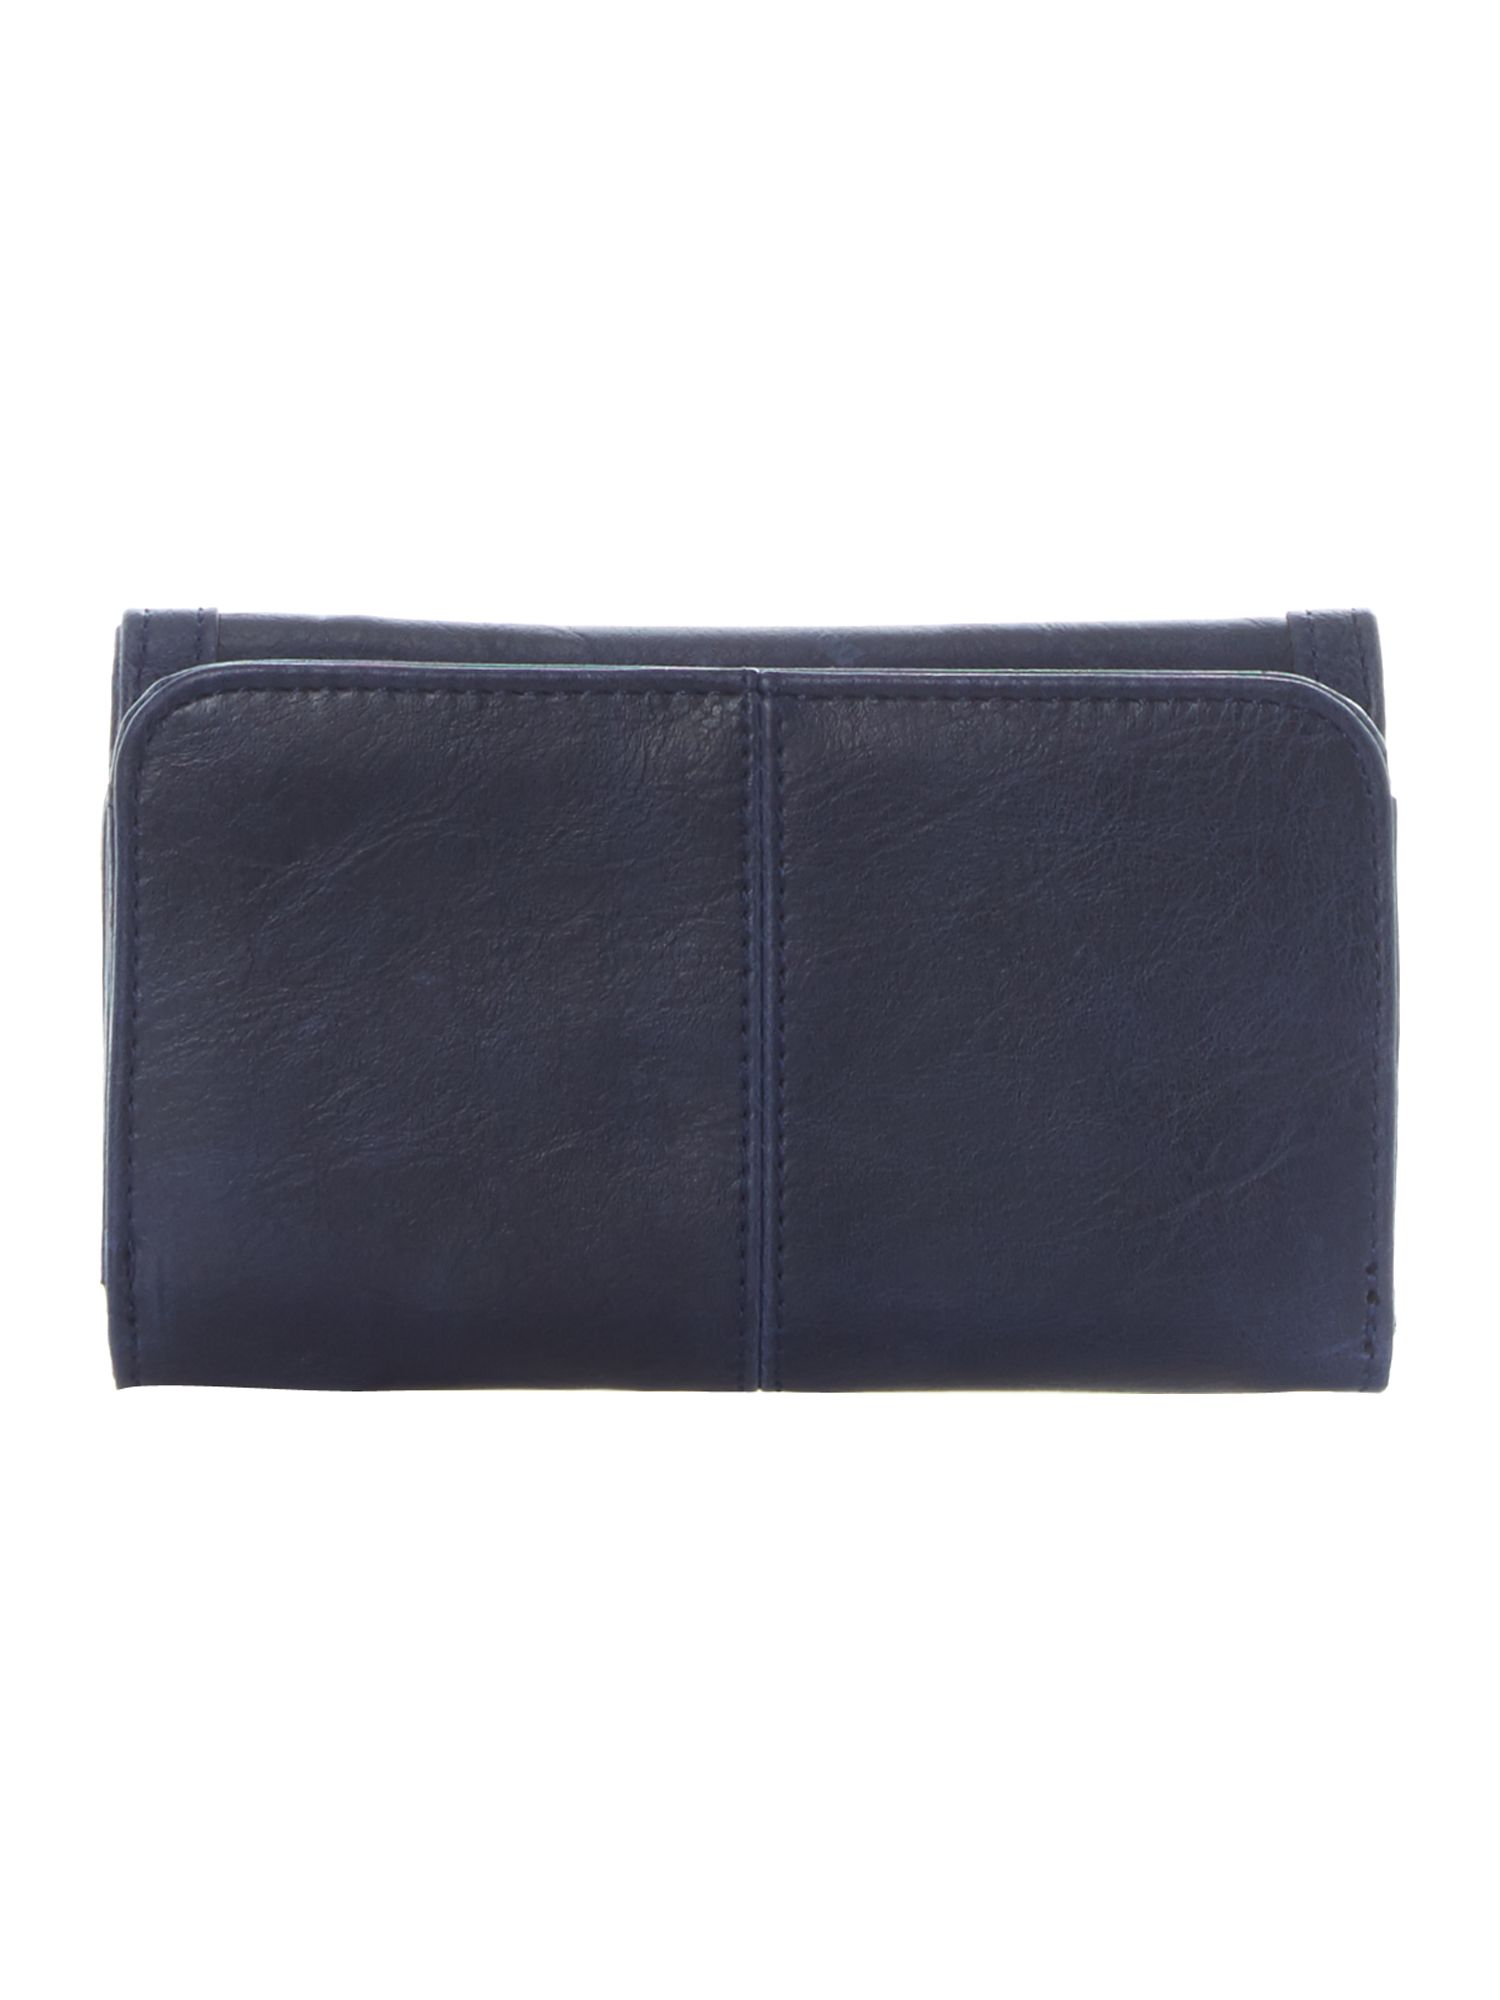 Blue small flapover purse